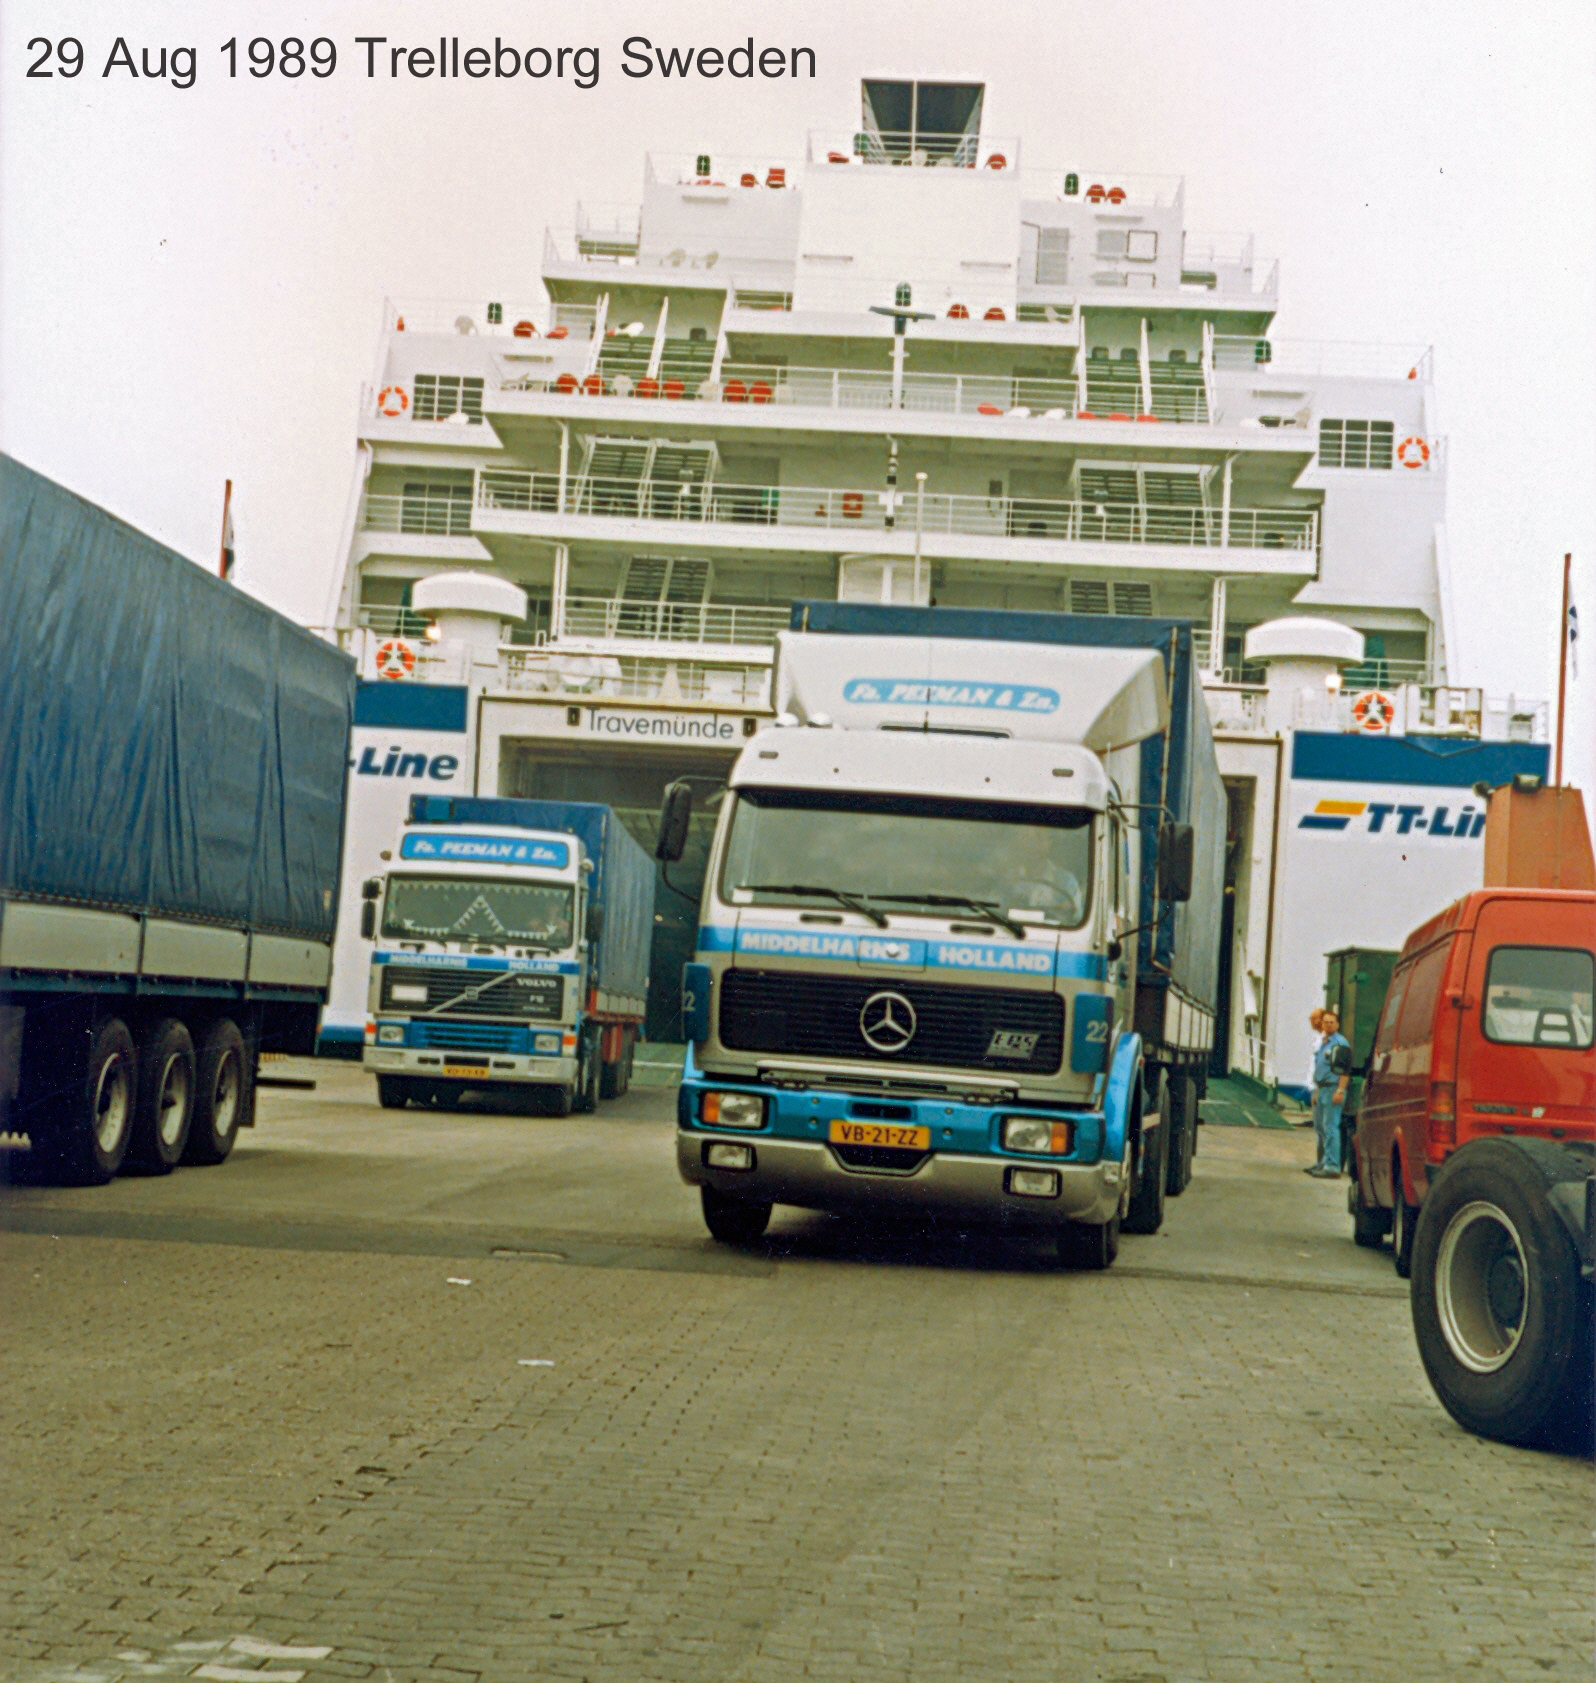 Peeman-Trucks-harbour-Trelleborg--leaving-ferry-Travemunde-Germany--Trelleborg-Sweden--29-aug-1989